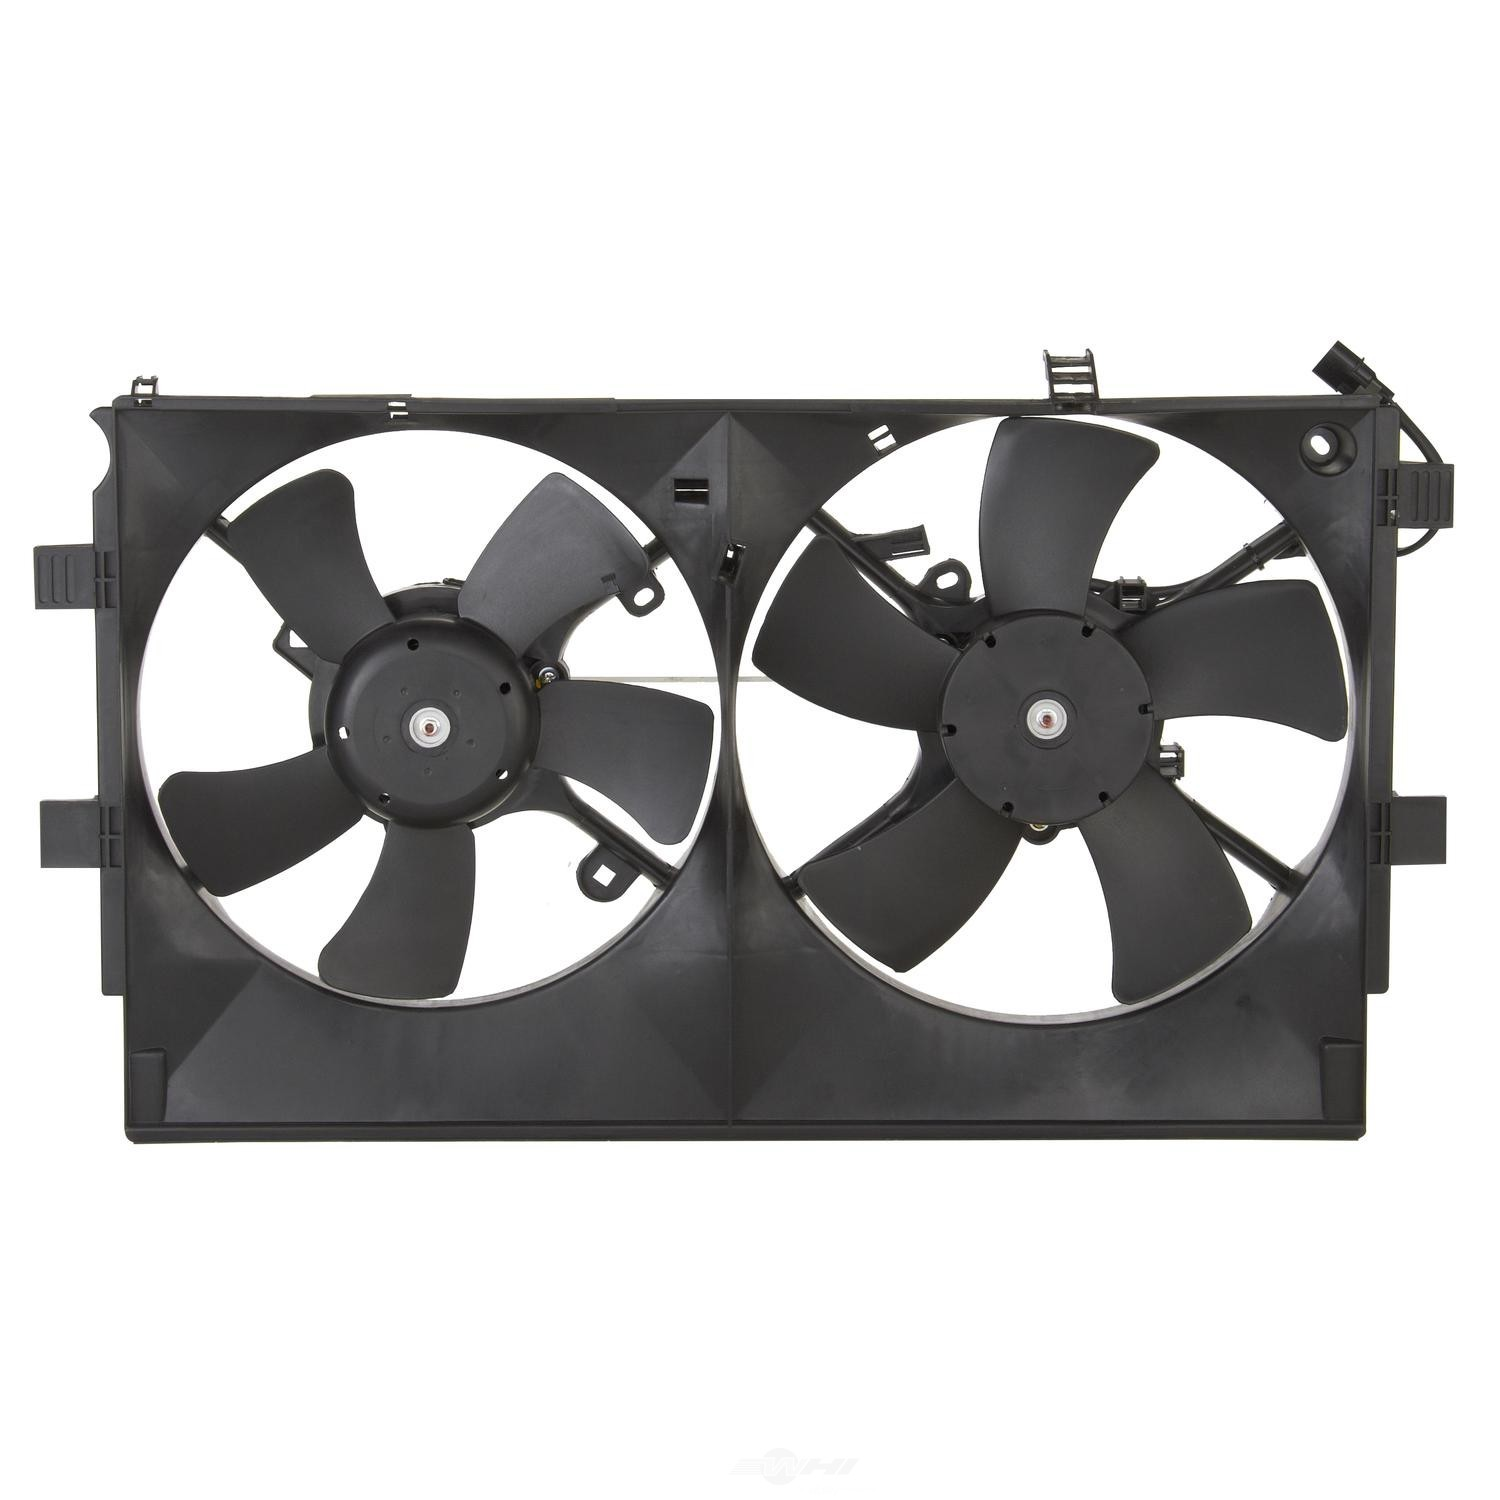 SPECTRA PREMIUM IND, INC. - Dual Radiator and Condenser Fan Assembly - SPC CF22025